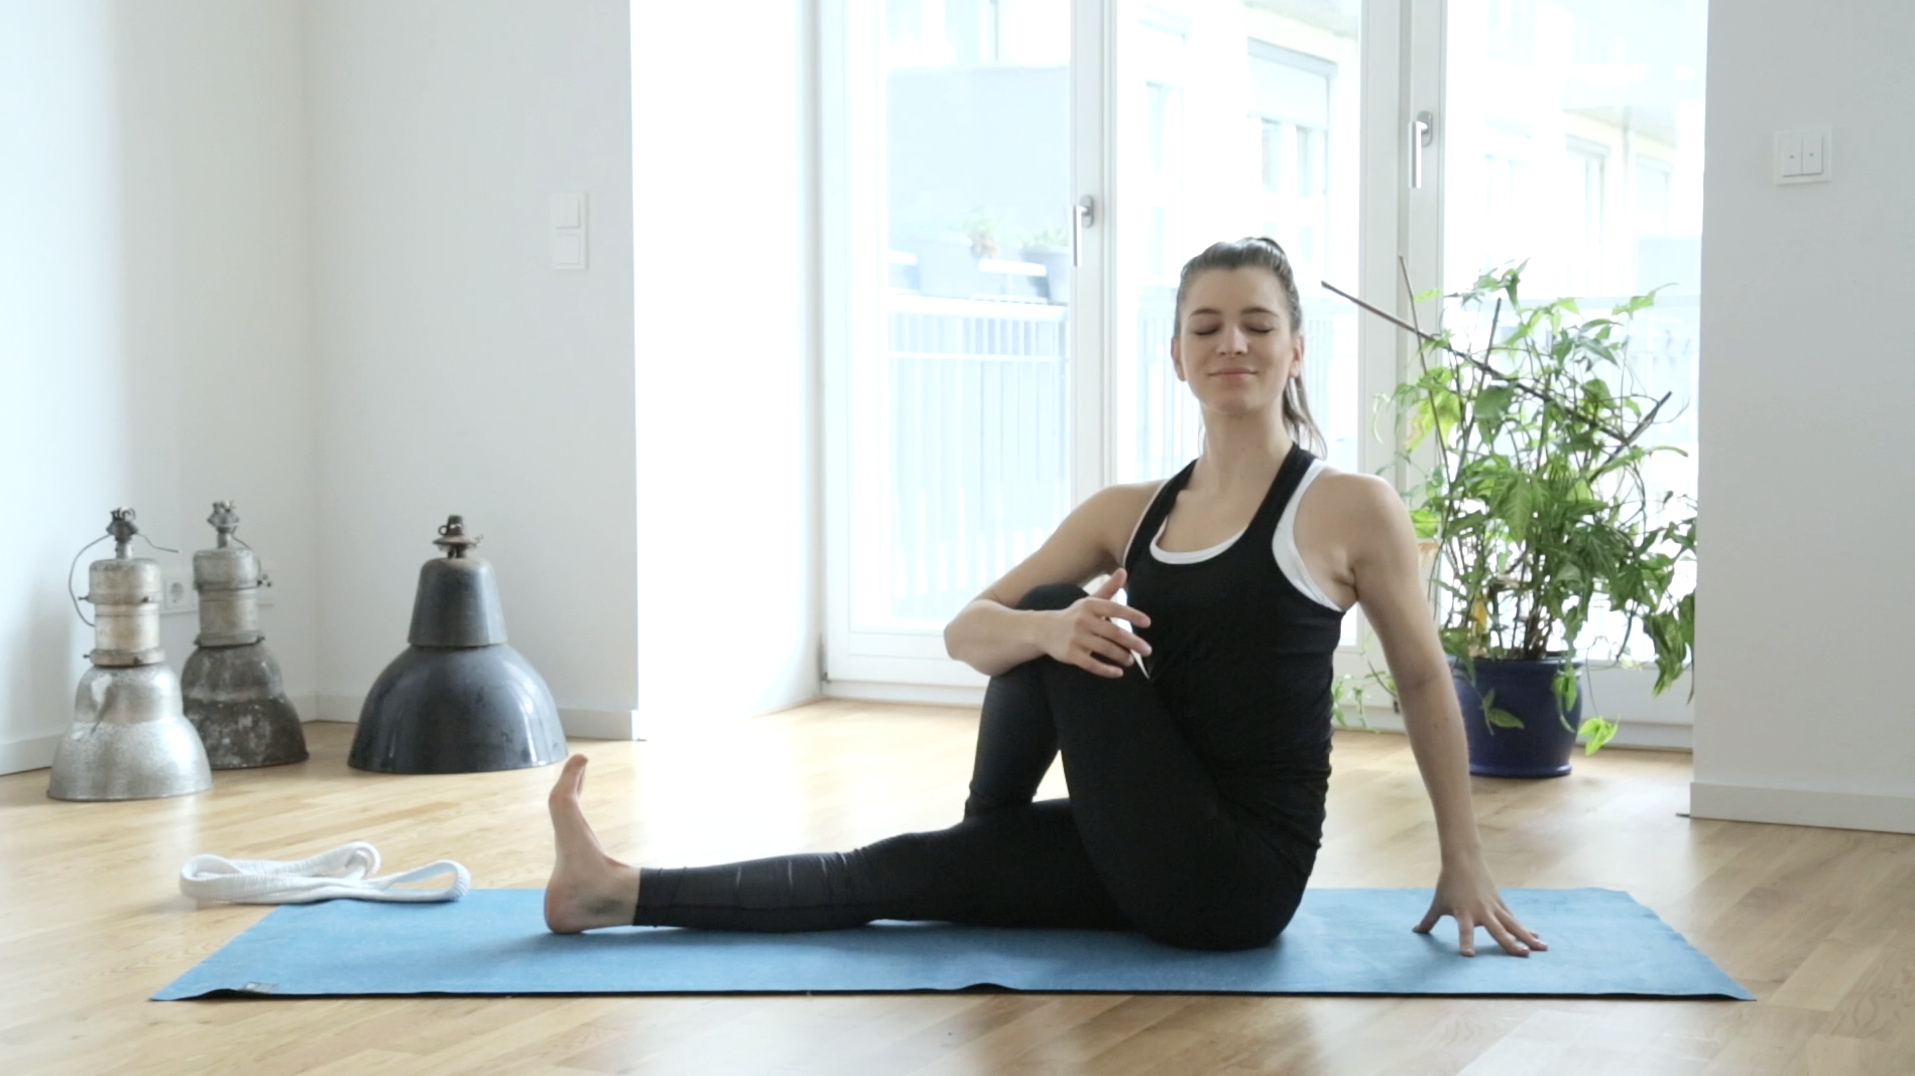 Yoga-Entspannung-Anti-Stress-Relax-11